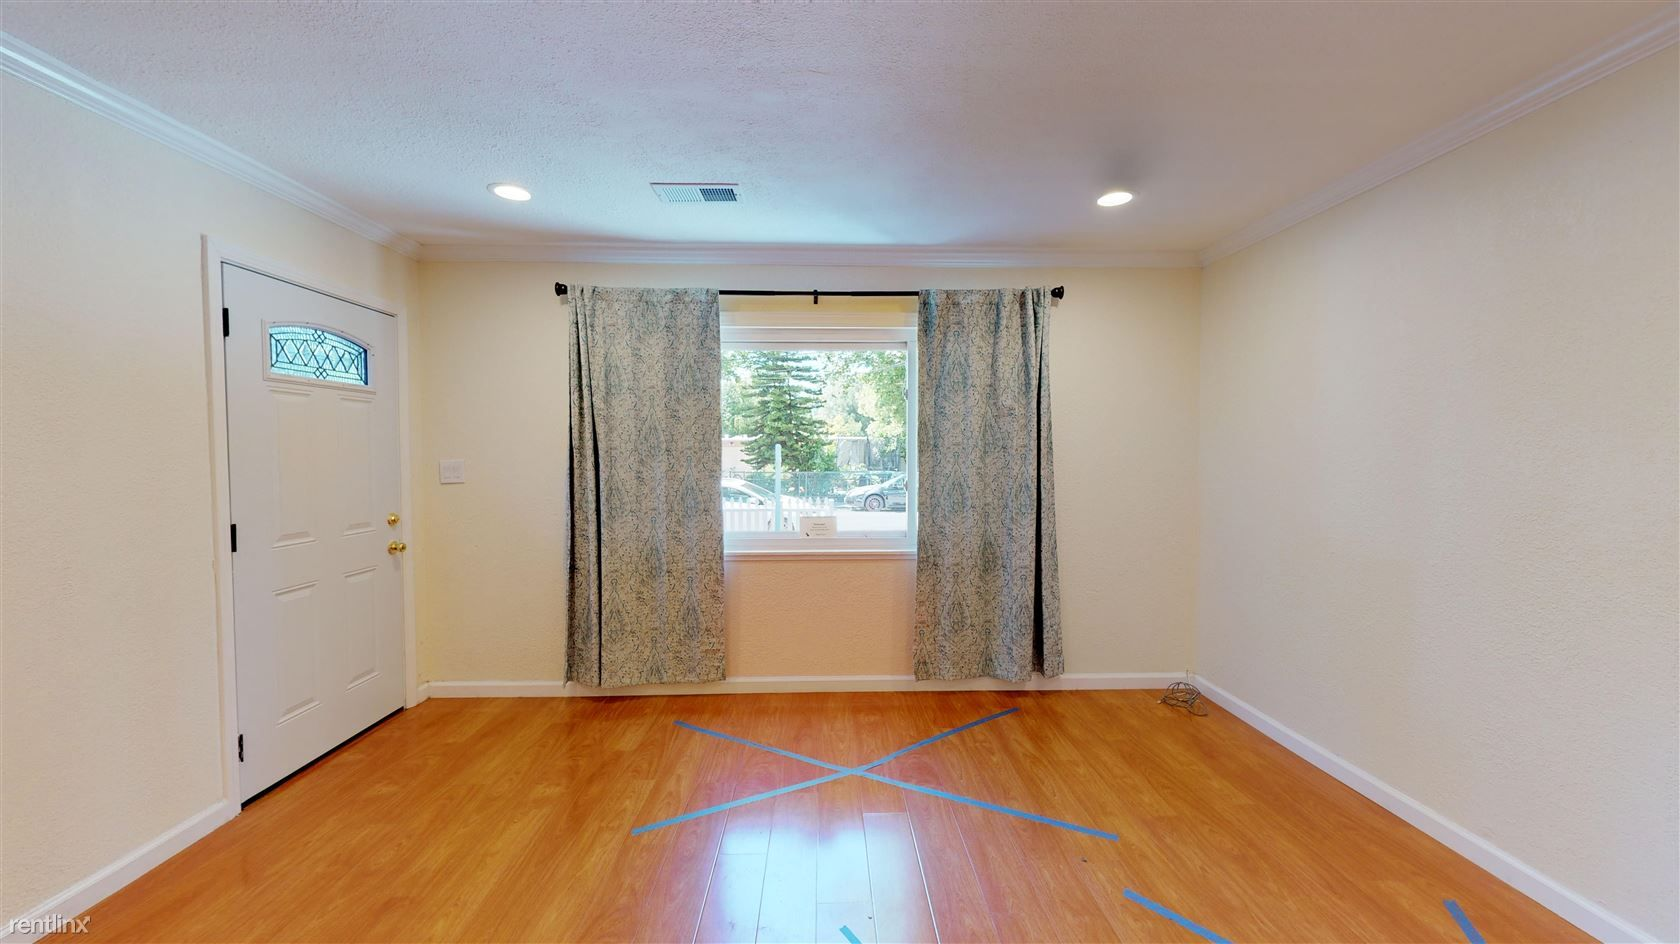 Tyche Haus for rent